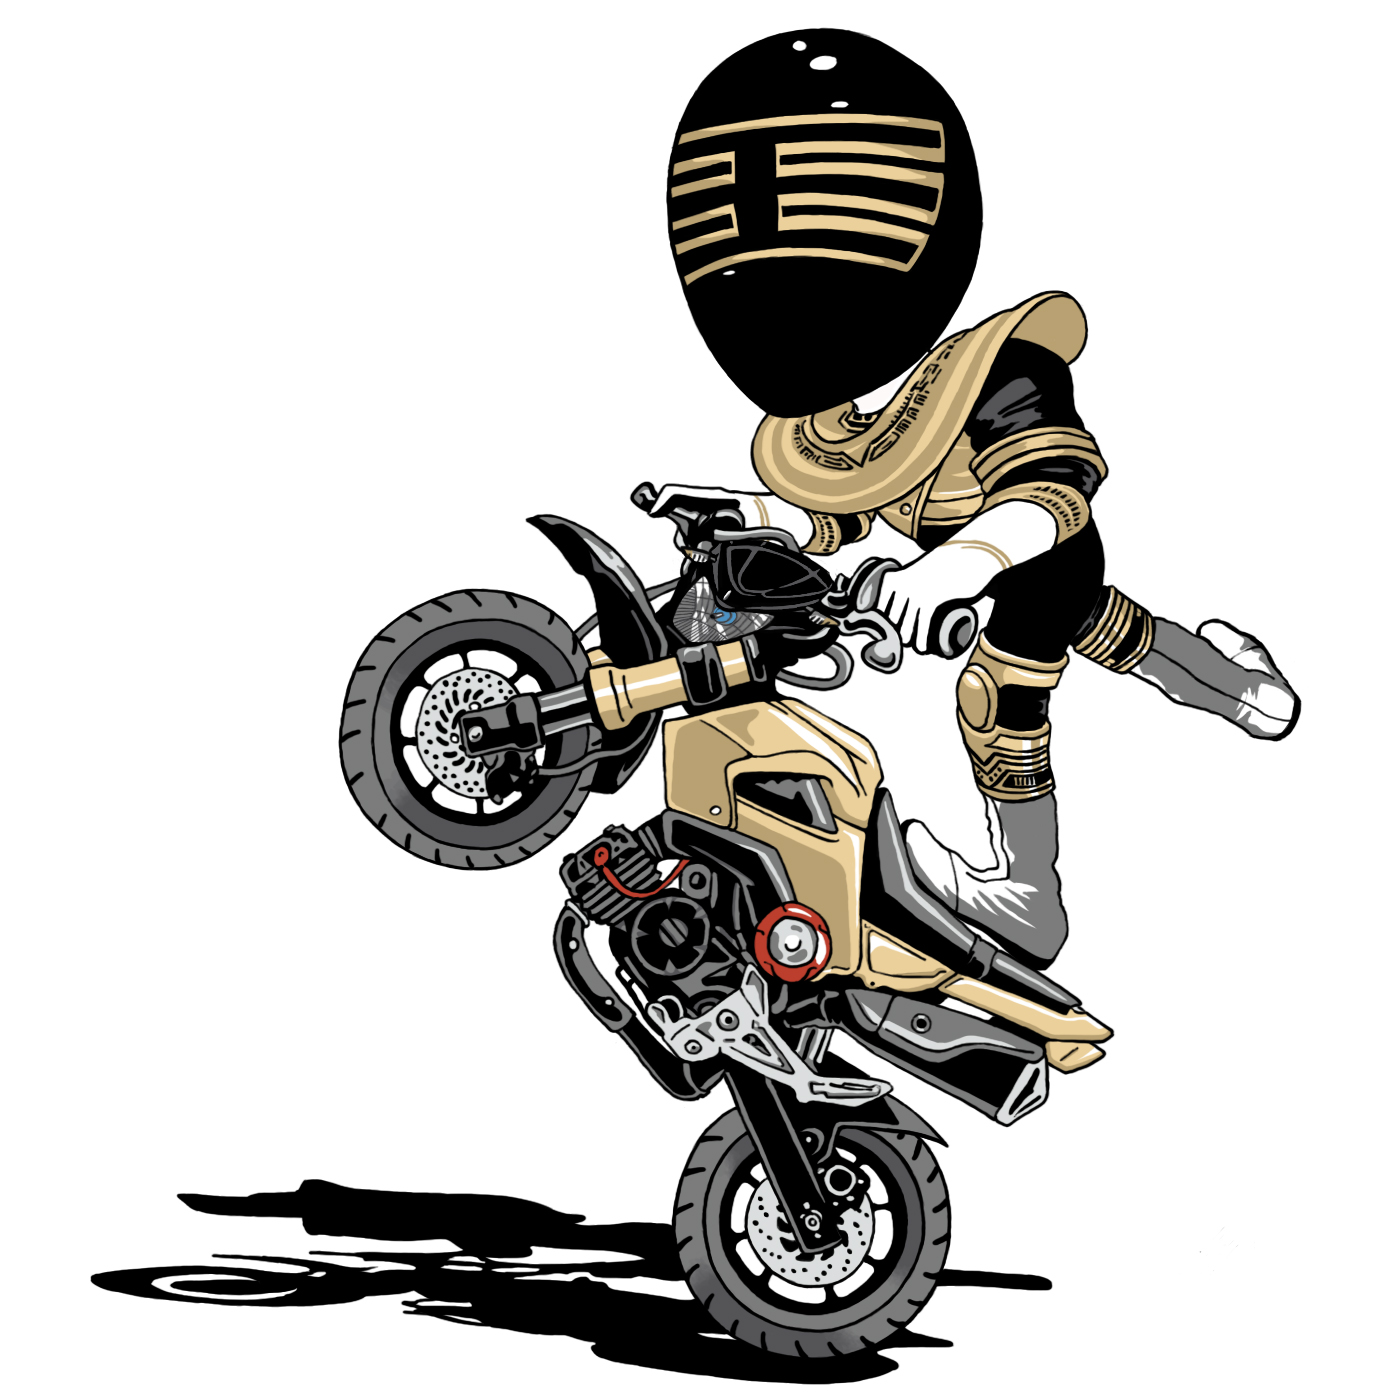 Gold Ranger Grom - Painted for a Honda Grom enthusiast who shares an obsession with the Power Rangers